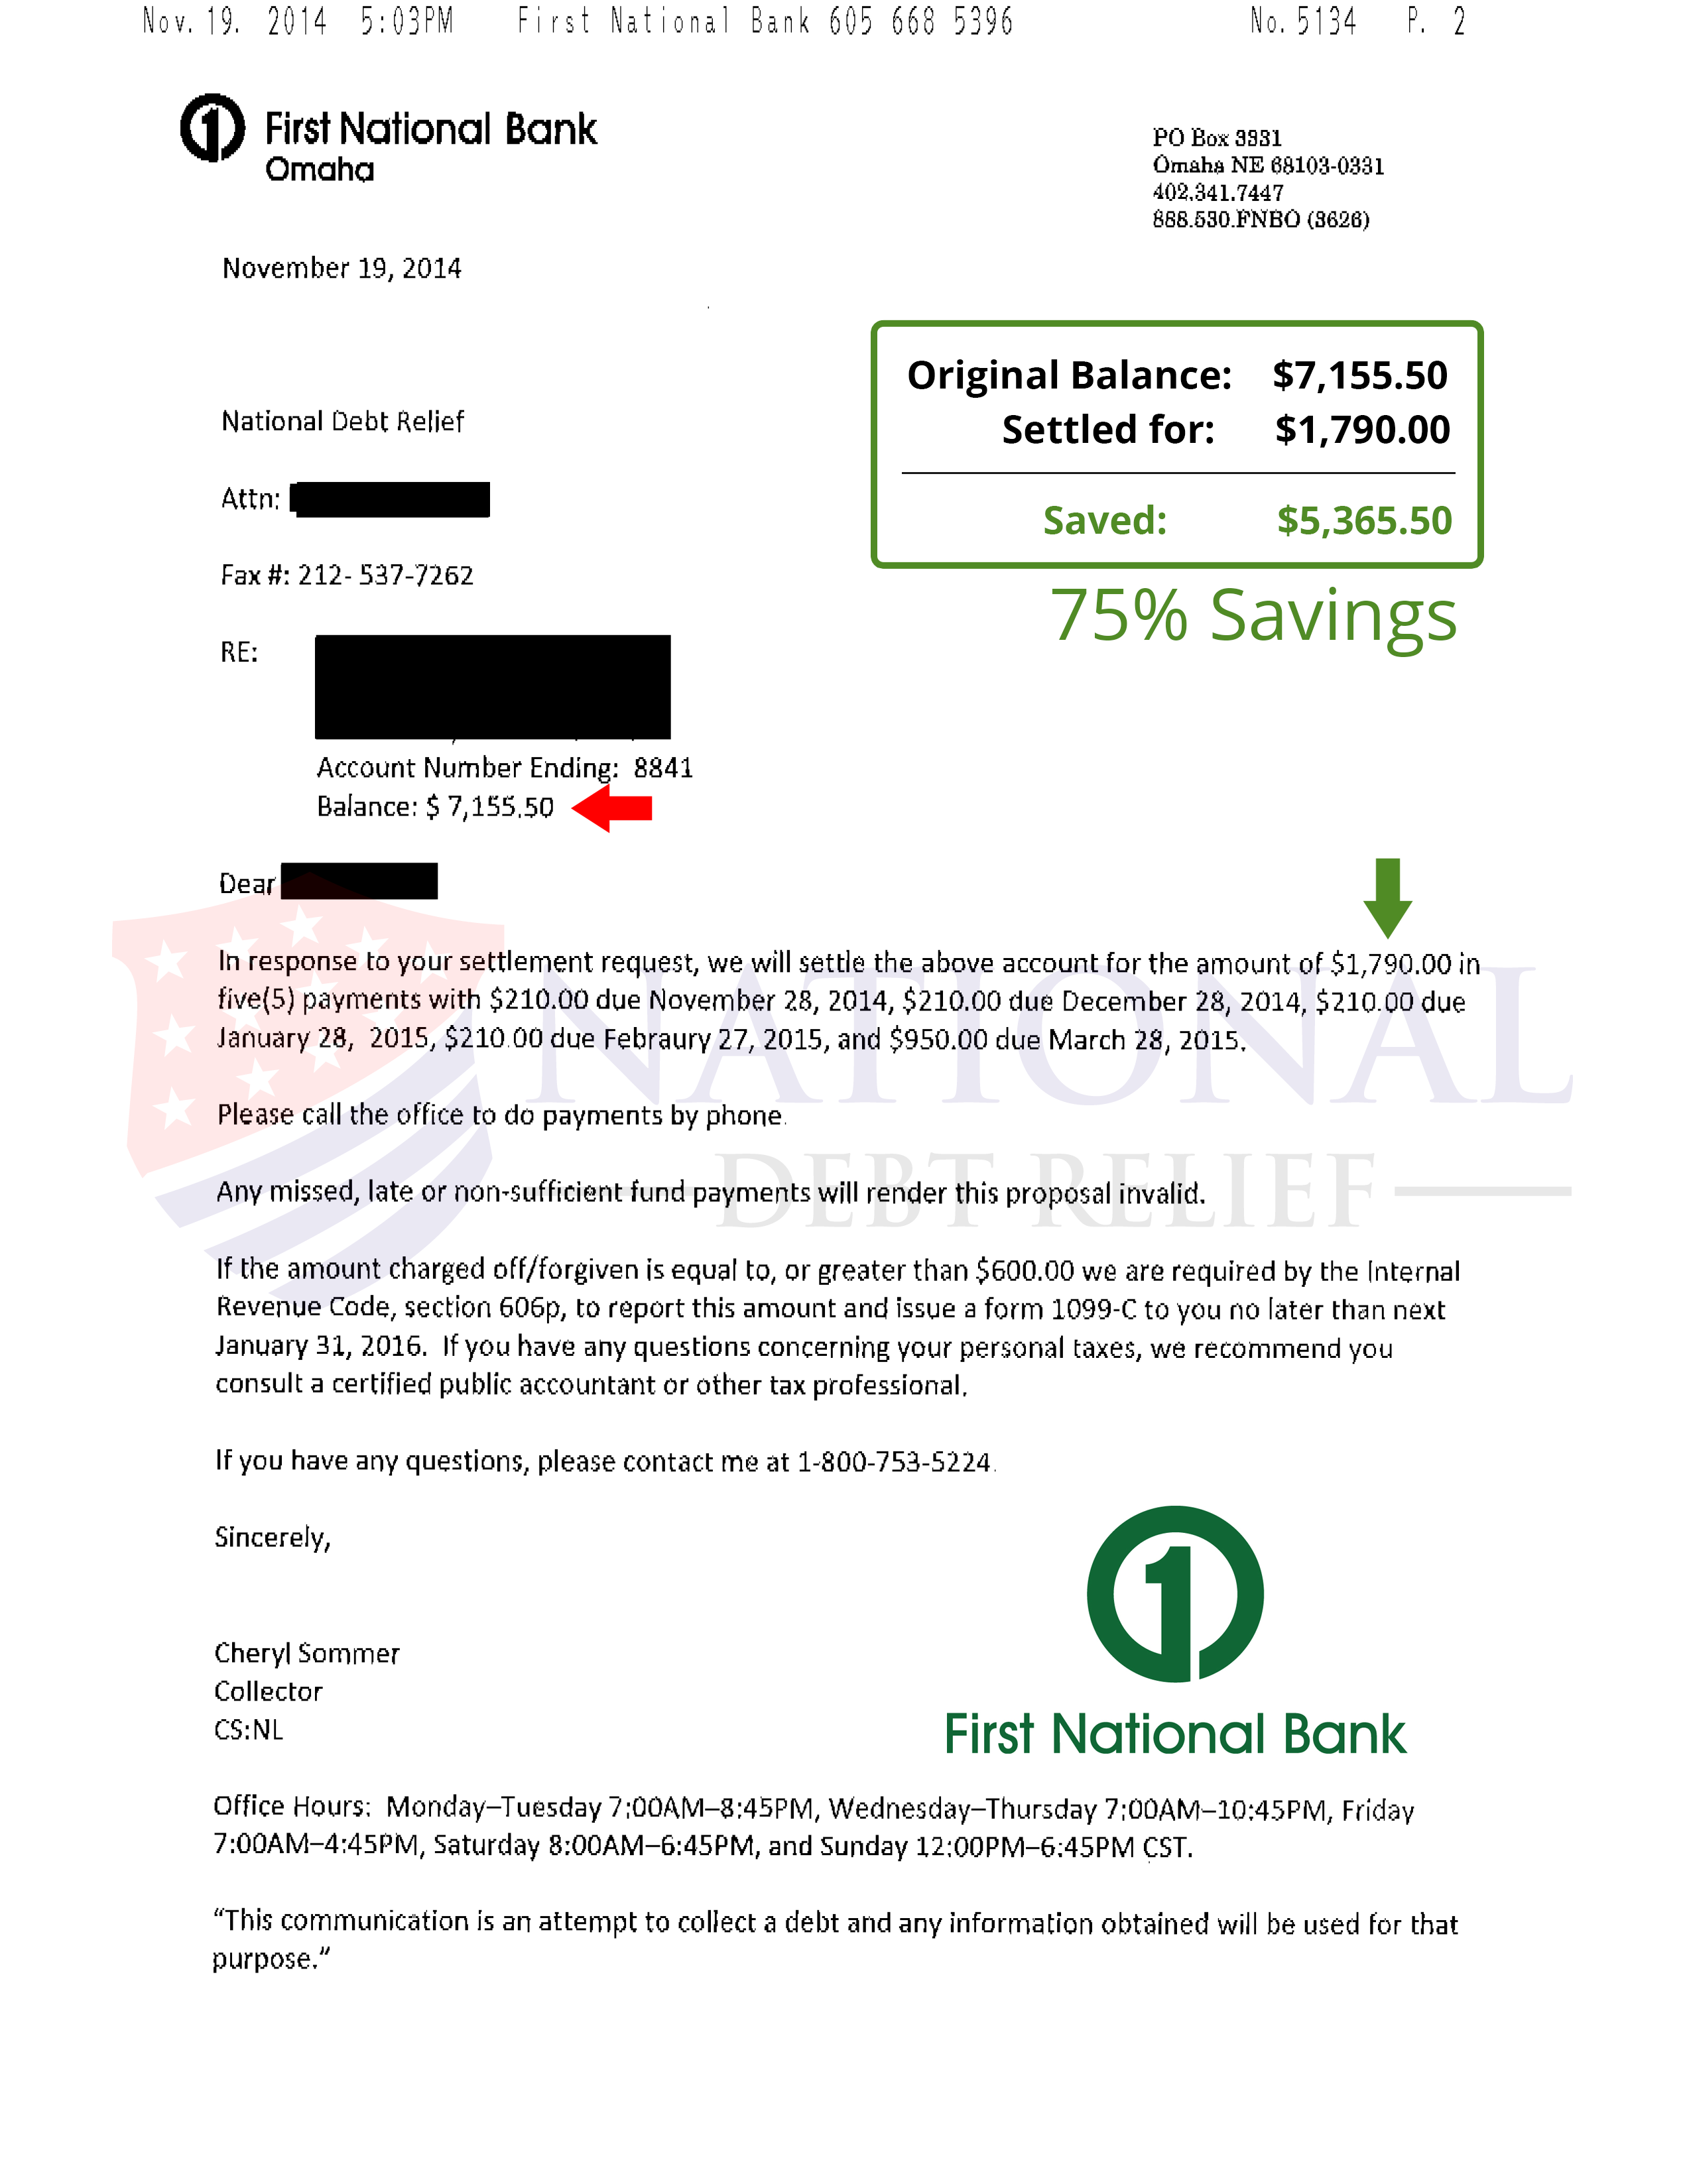 Fake Capital One Letter from www.nationaldebtrelief.com